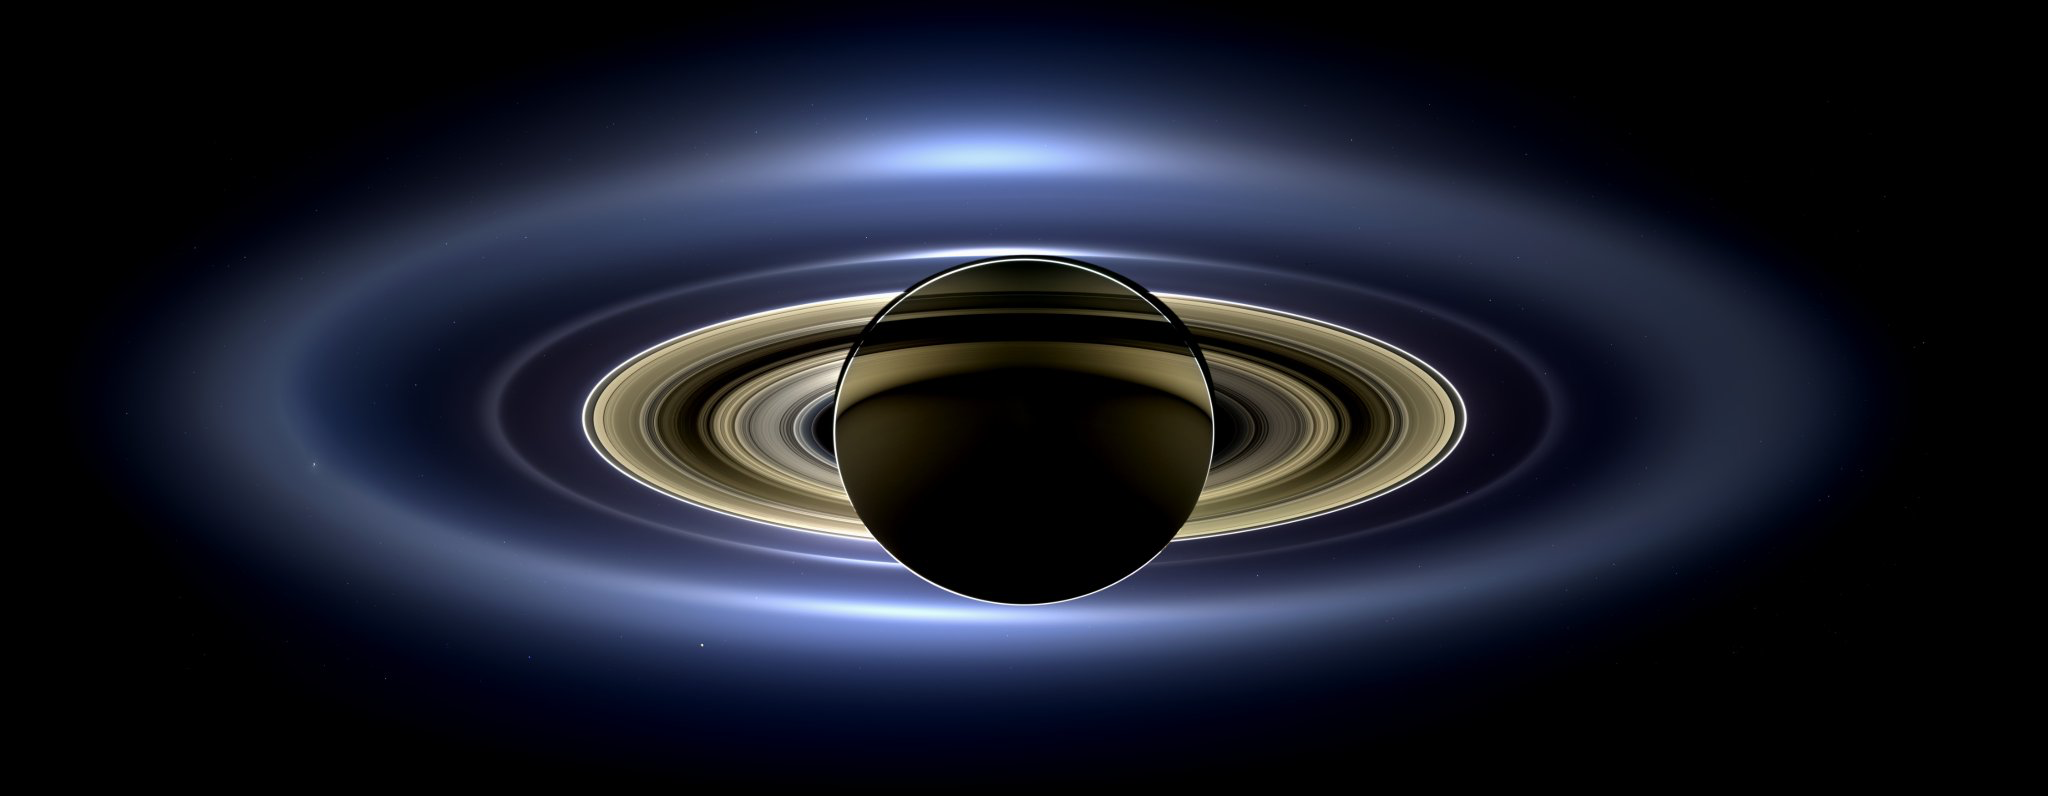 Of the many spectacular photos Cassini has taken over the years!